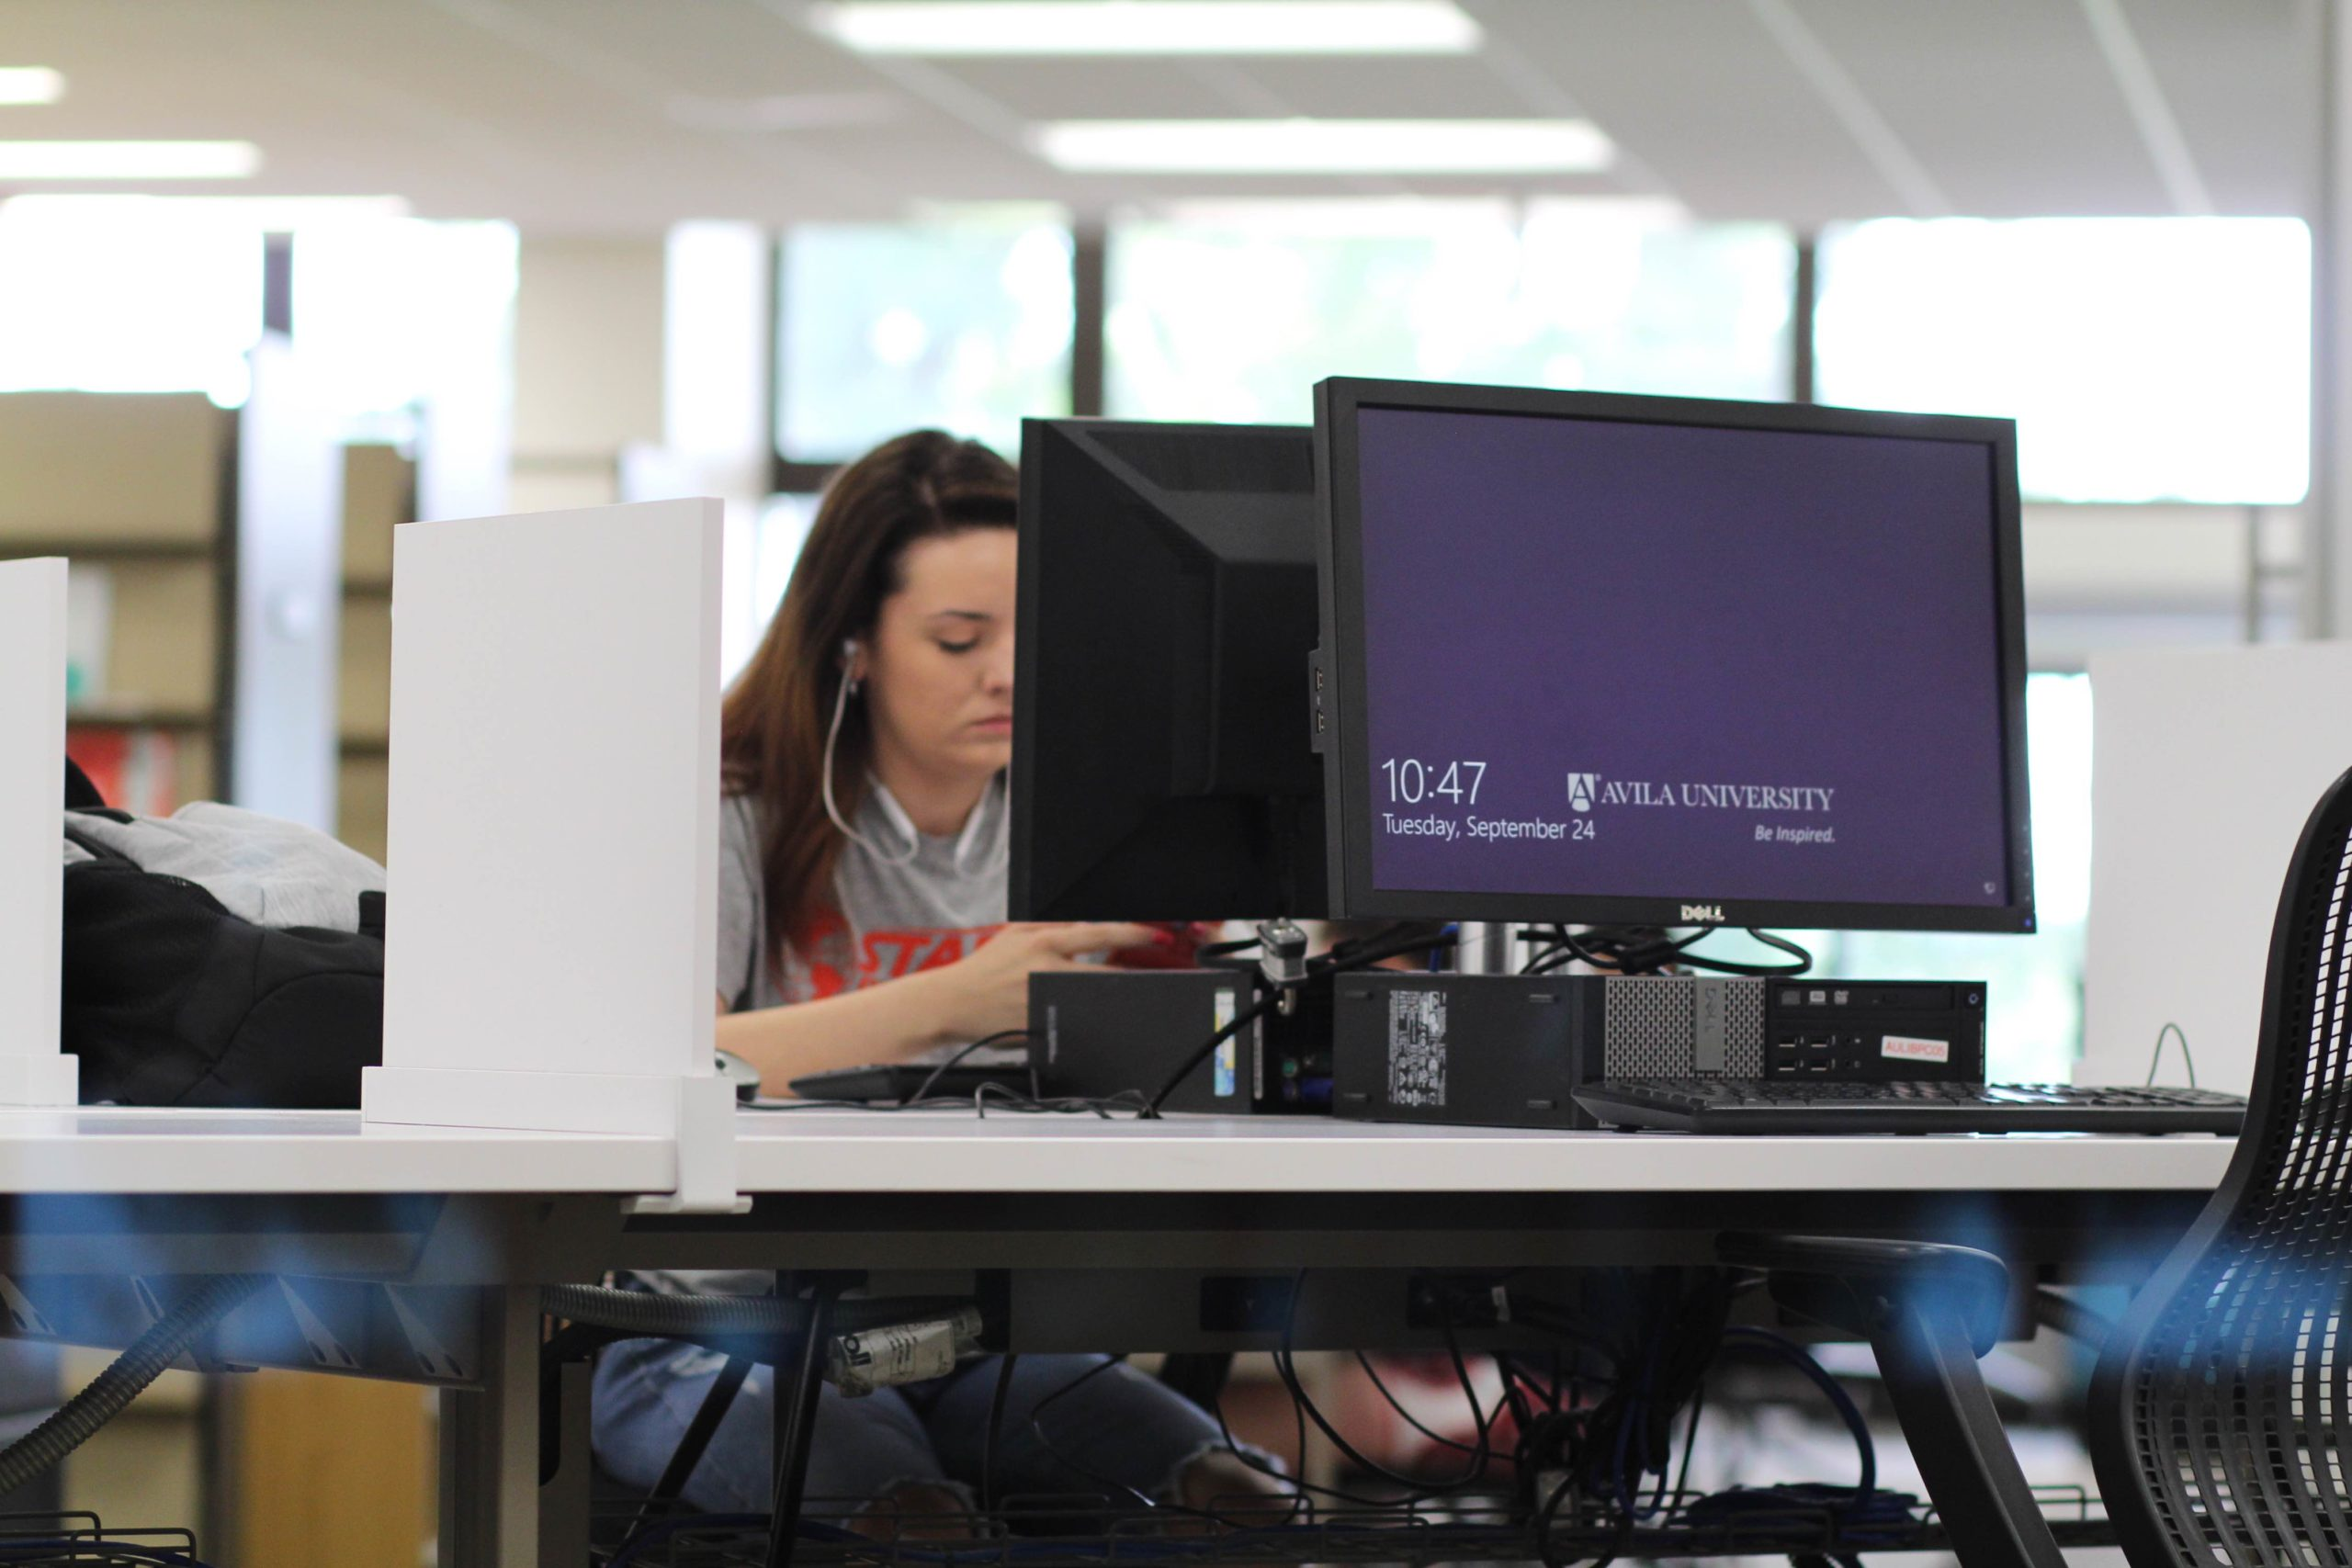 A student works at a computer station in the Learning Commons